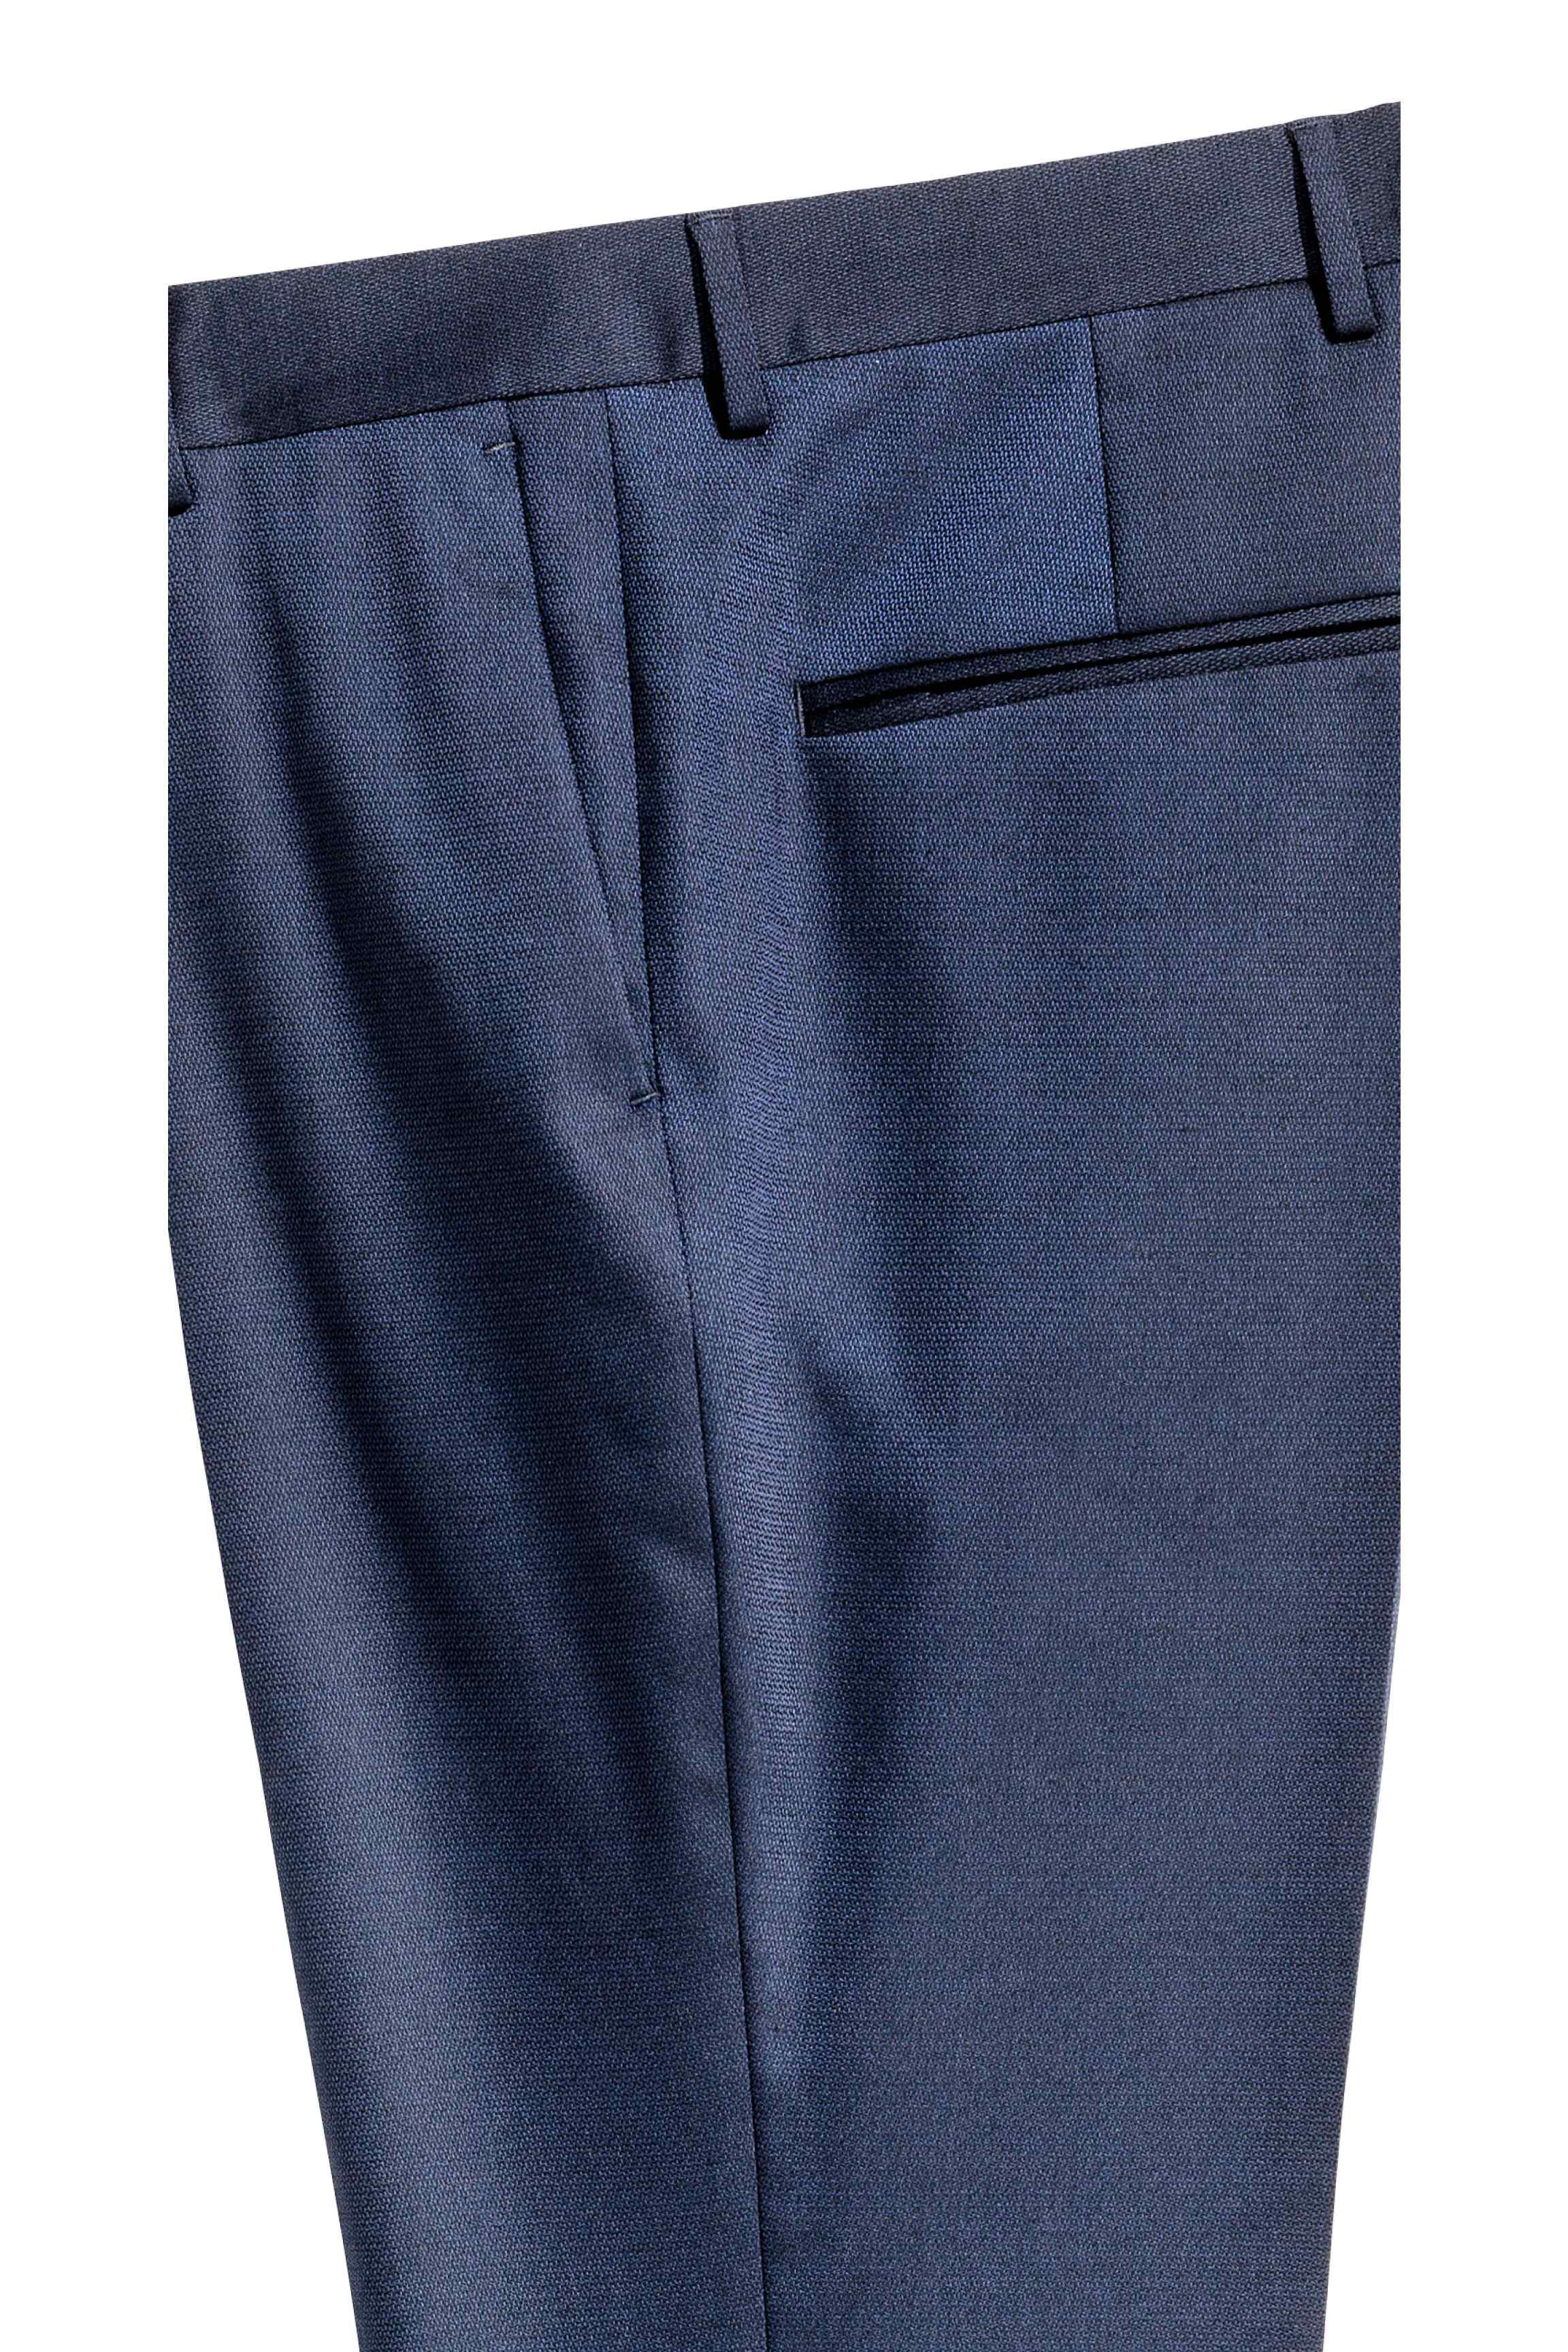 H&M Synthetic Suit Trousers Slim Fit in Navy Blue (Blue) for Men